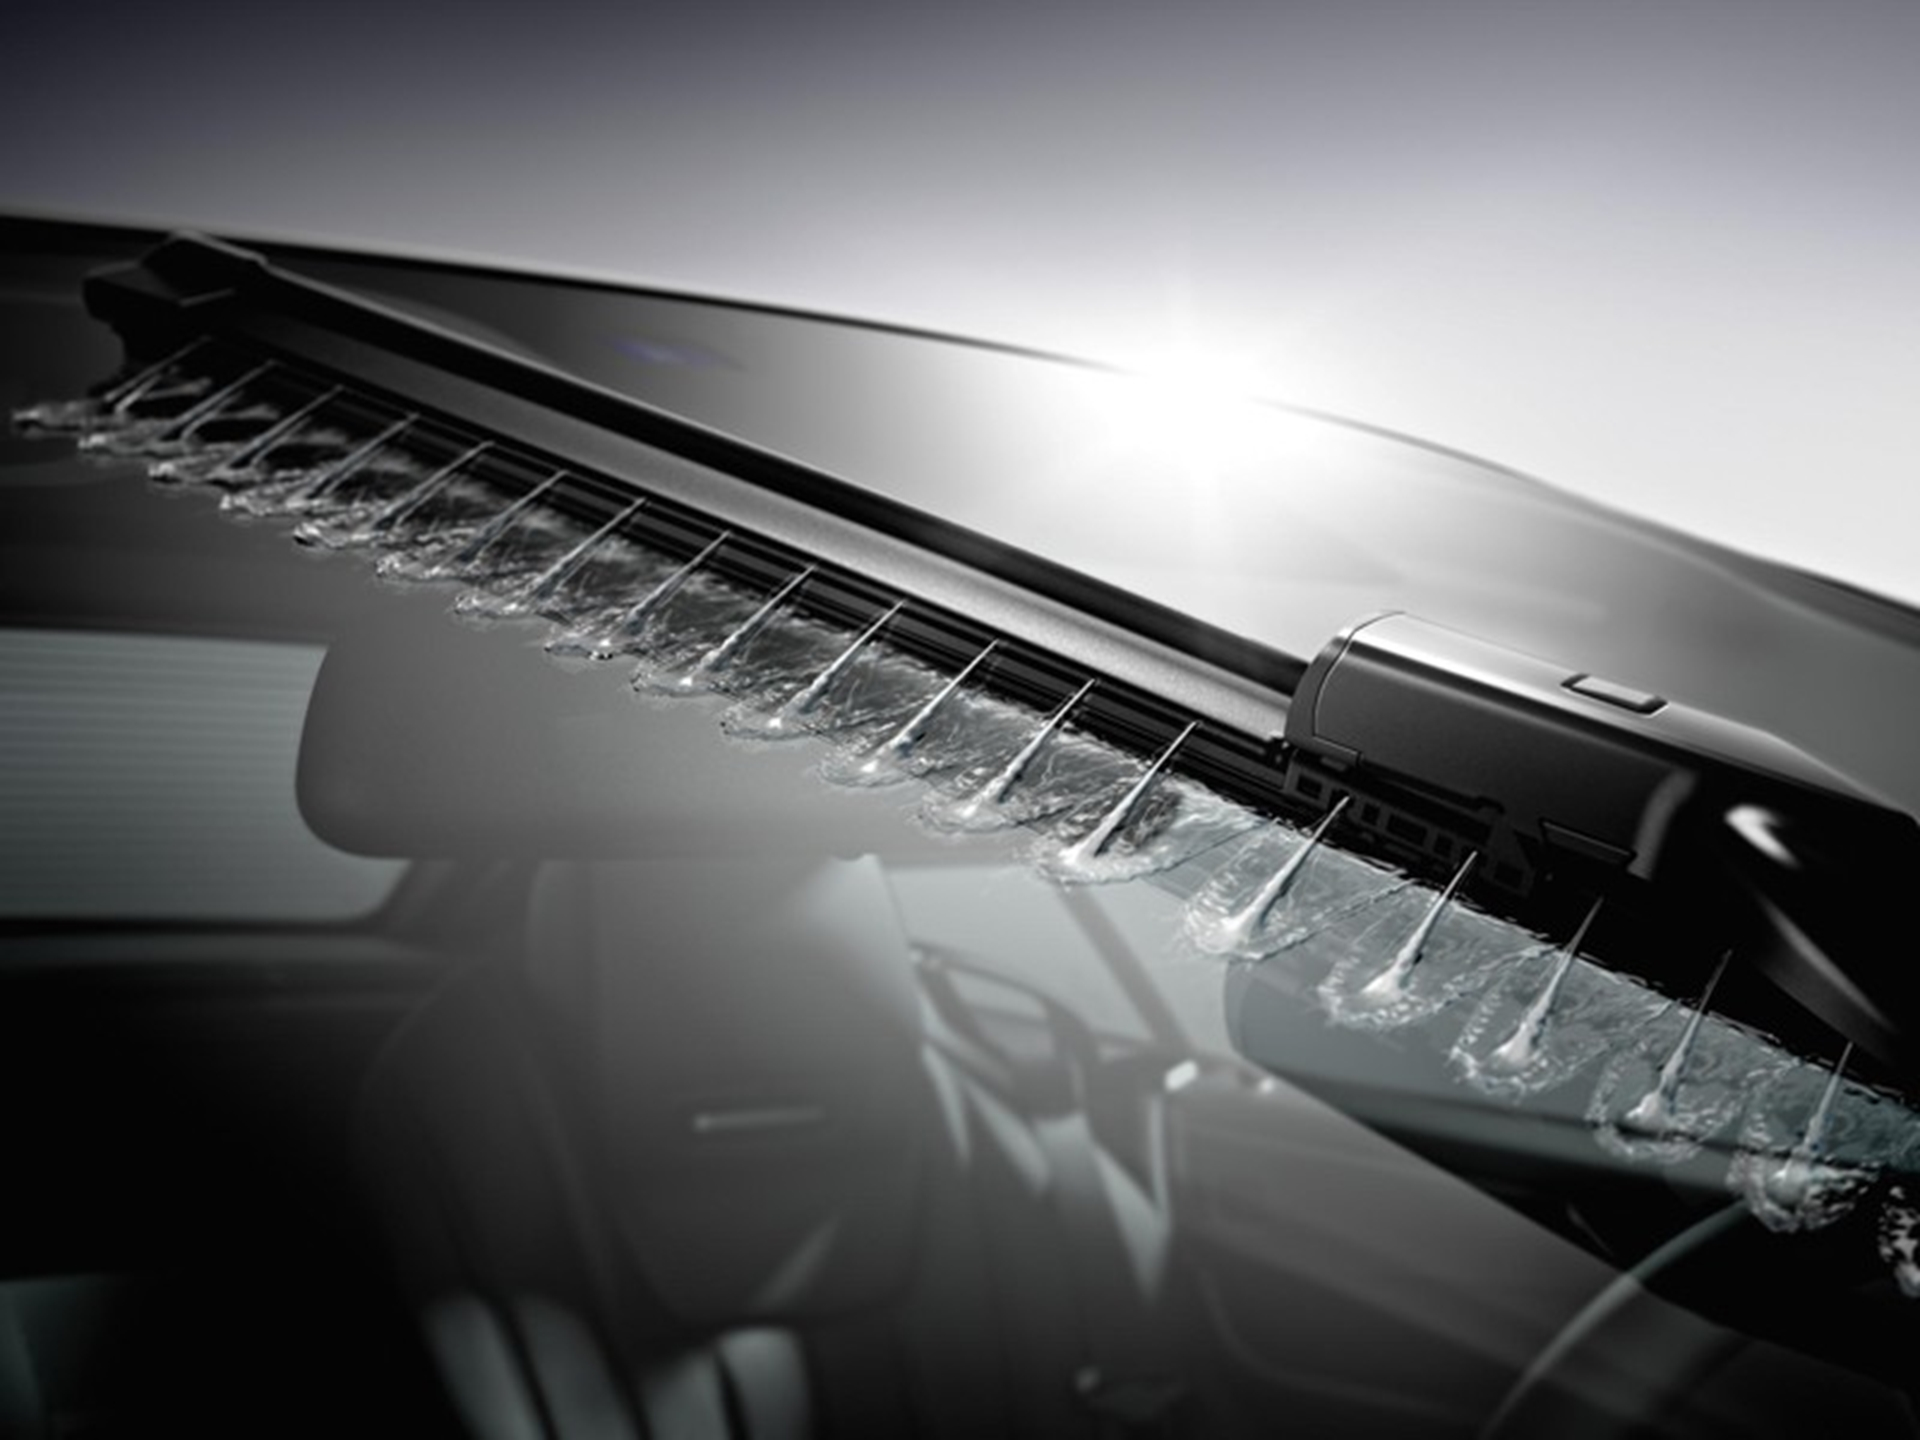 mercedes-benz-new-wiper-technology-2012